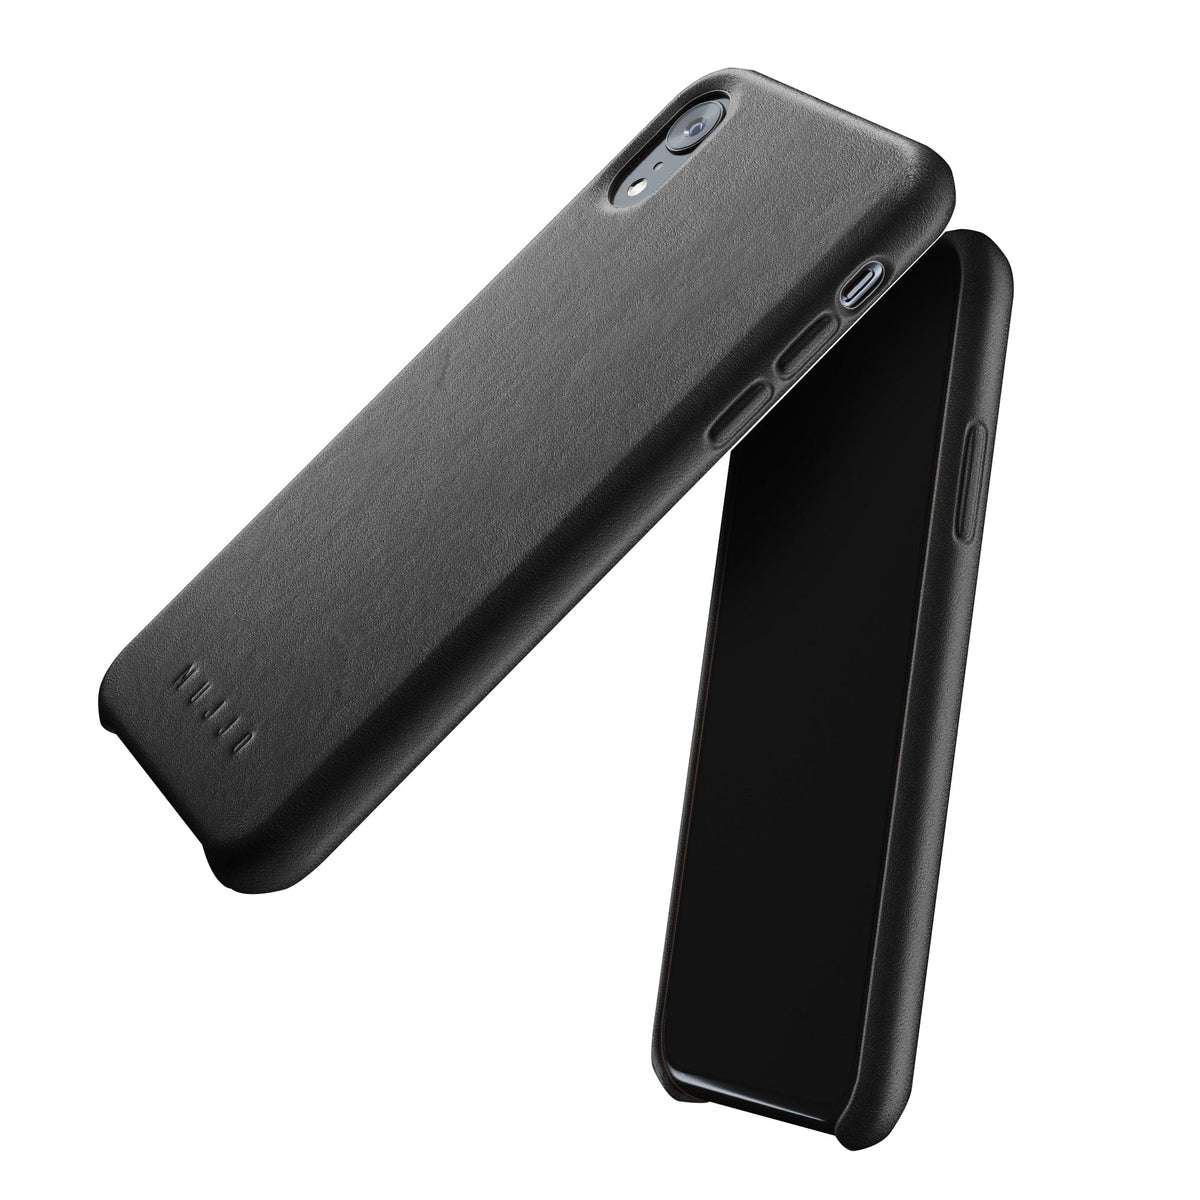 huge selection of caa34 201d3 Mujjo Full Leather case for Apple iPhone XR